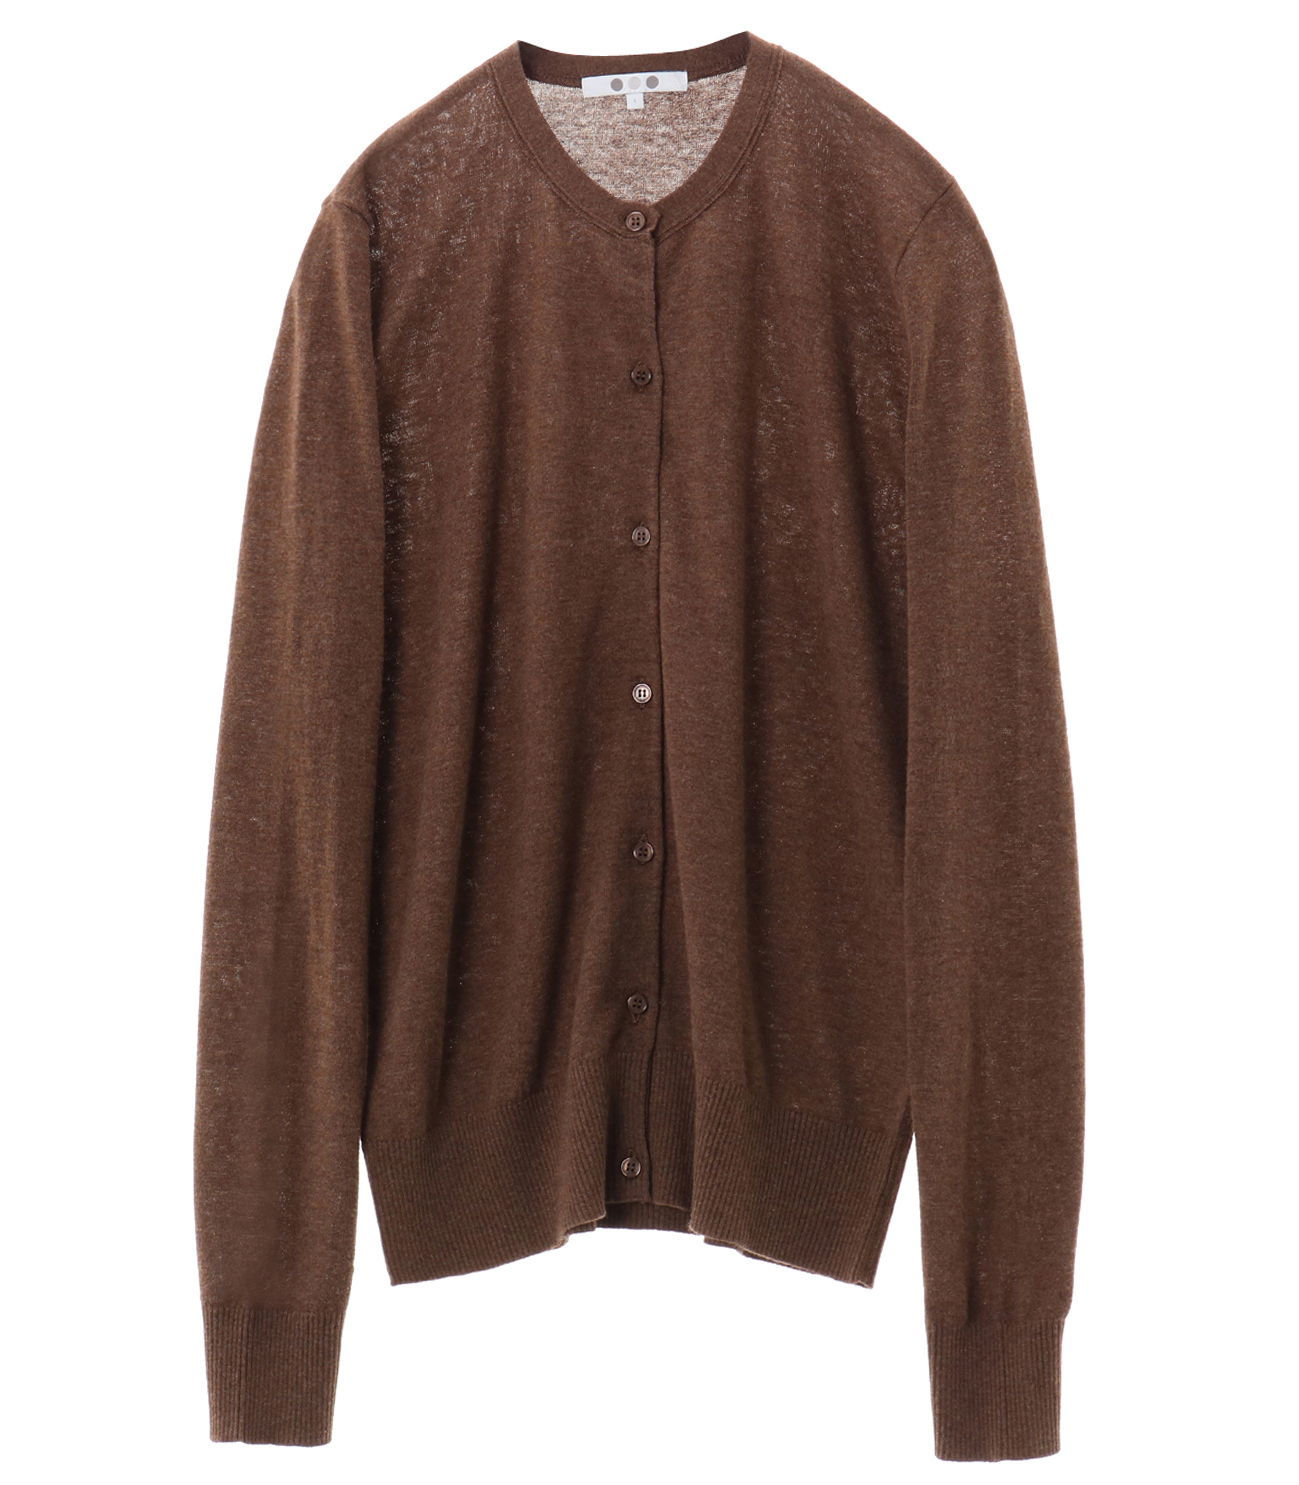 cotton melange cardigan 詳細画像 cocoa nib 1